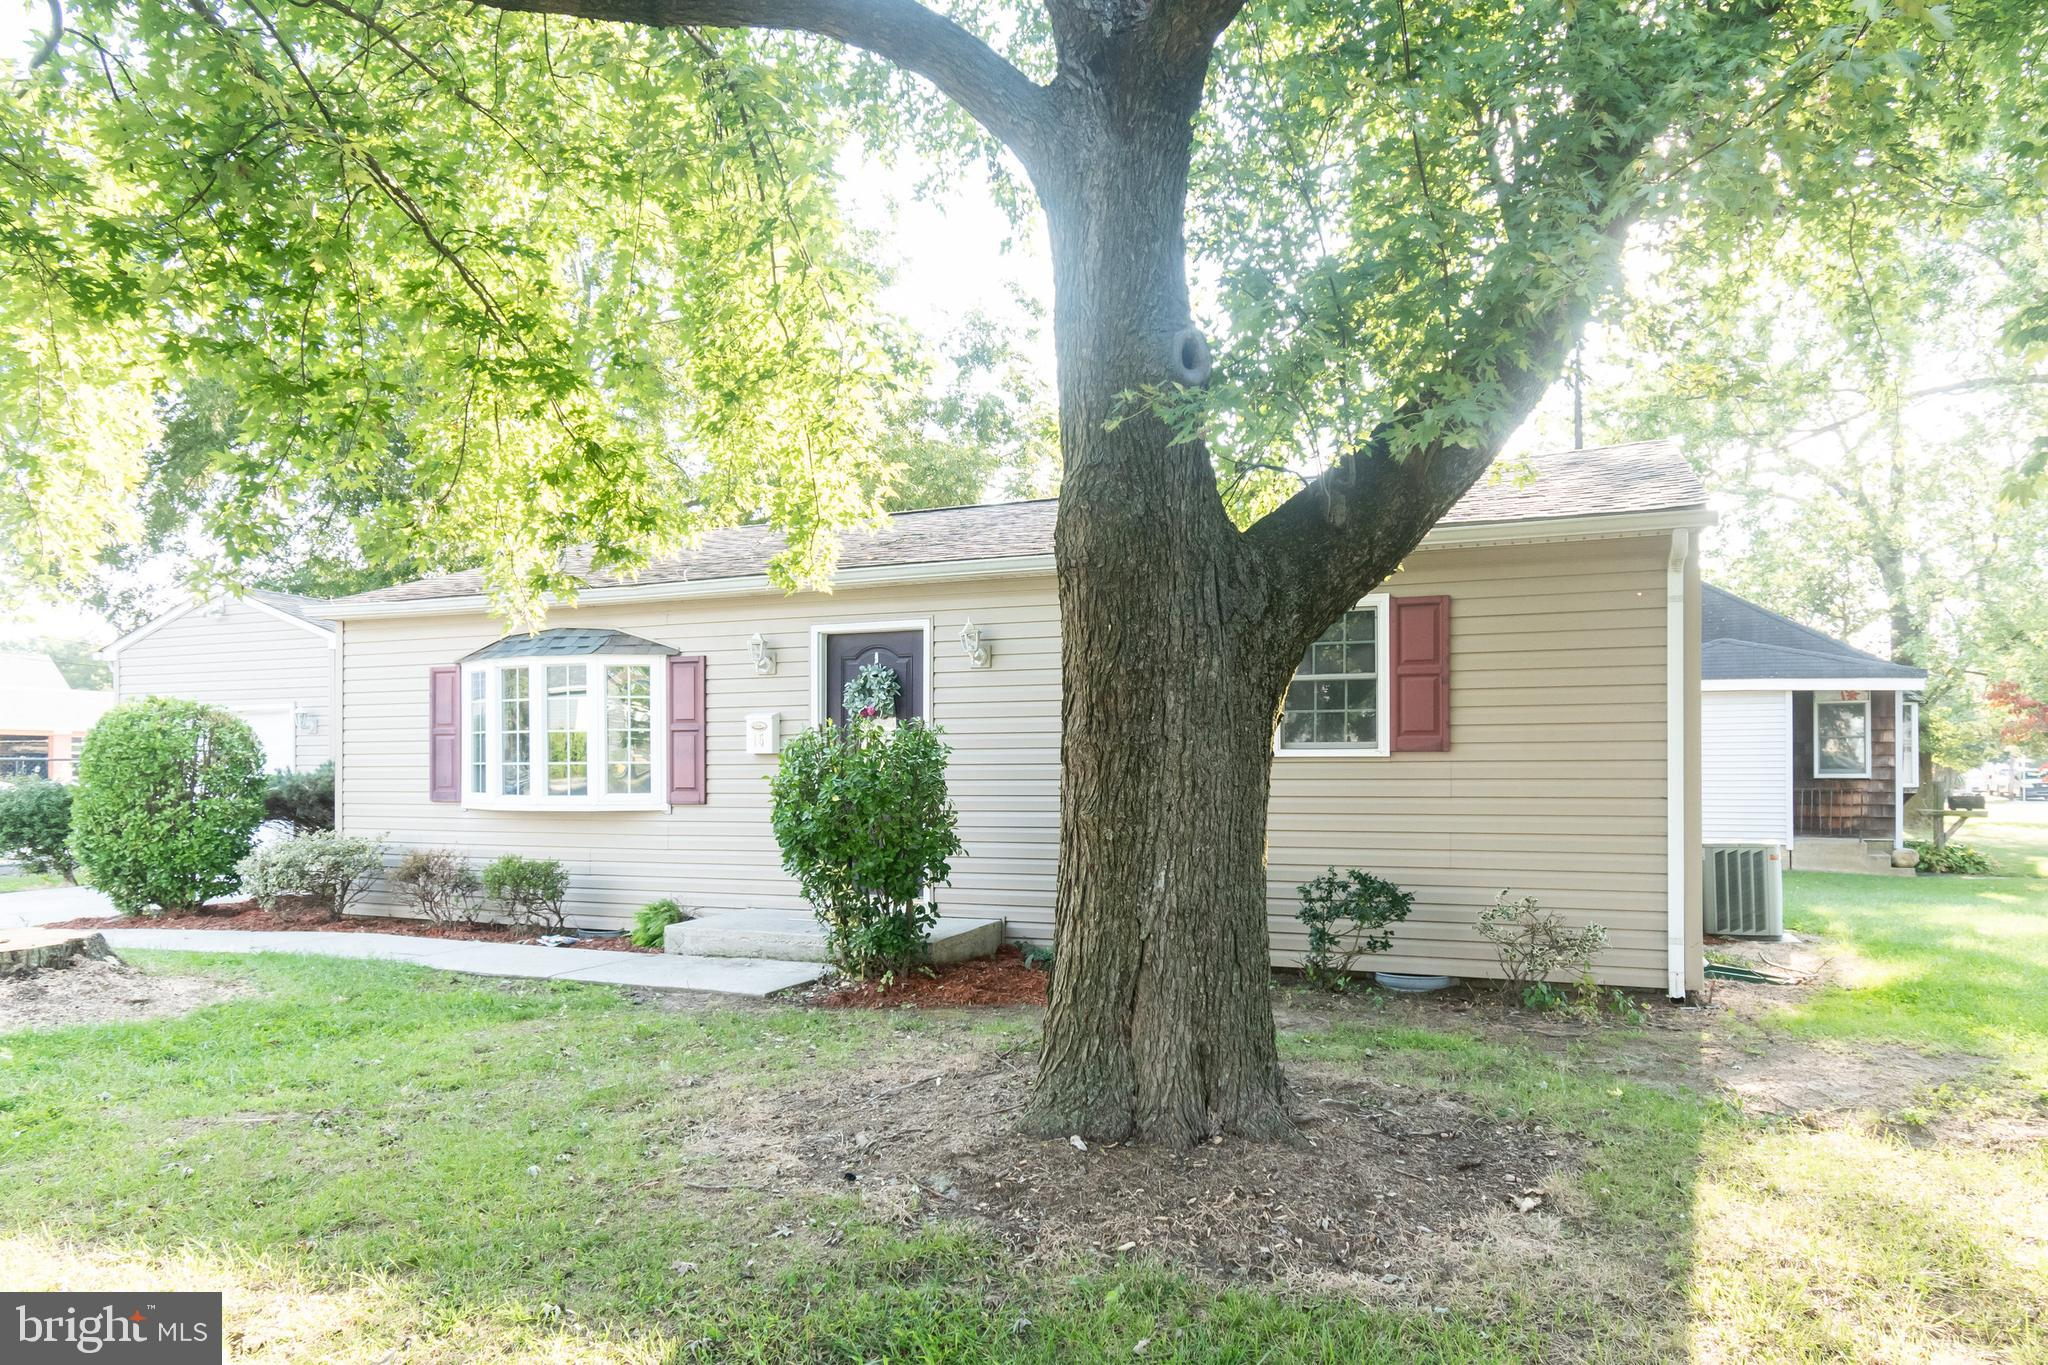 Come check out this great 3 bed 1.5 bath ranch home in Camden!  All new floors, new paint, kitchen appliances, granite countertops, new landscaping, new cabinets, attached one car garage, large yard, shade trees, and more in Caesar Rodney school district. Make your appt today!